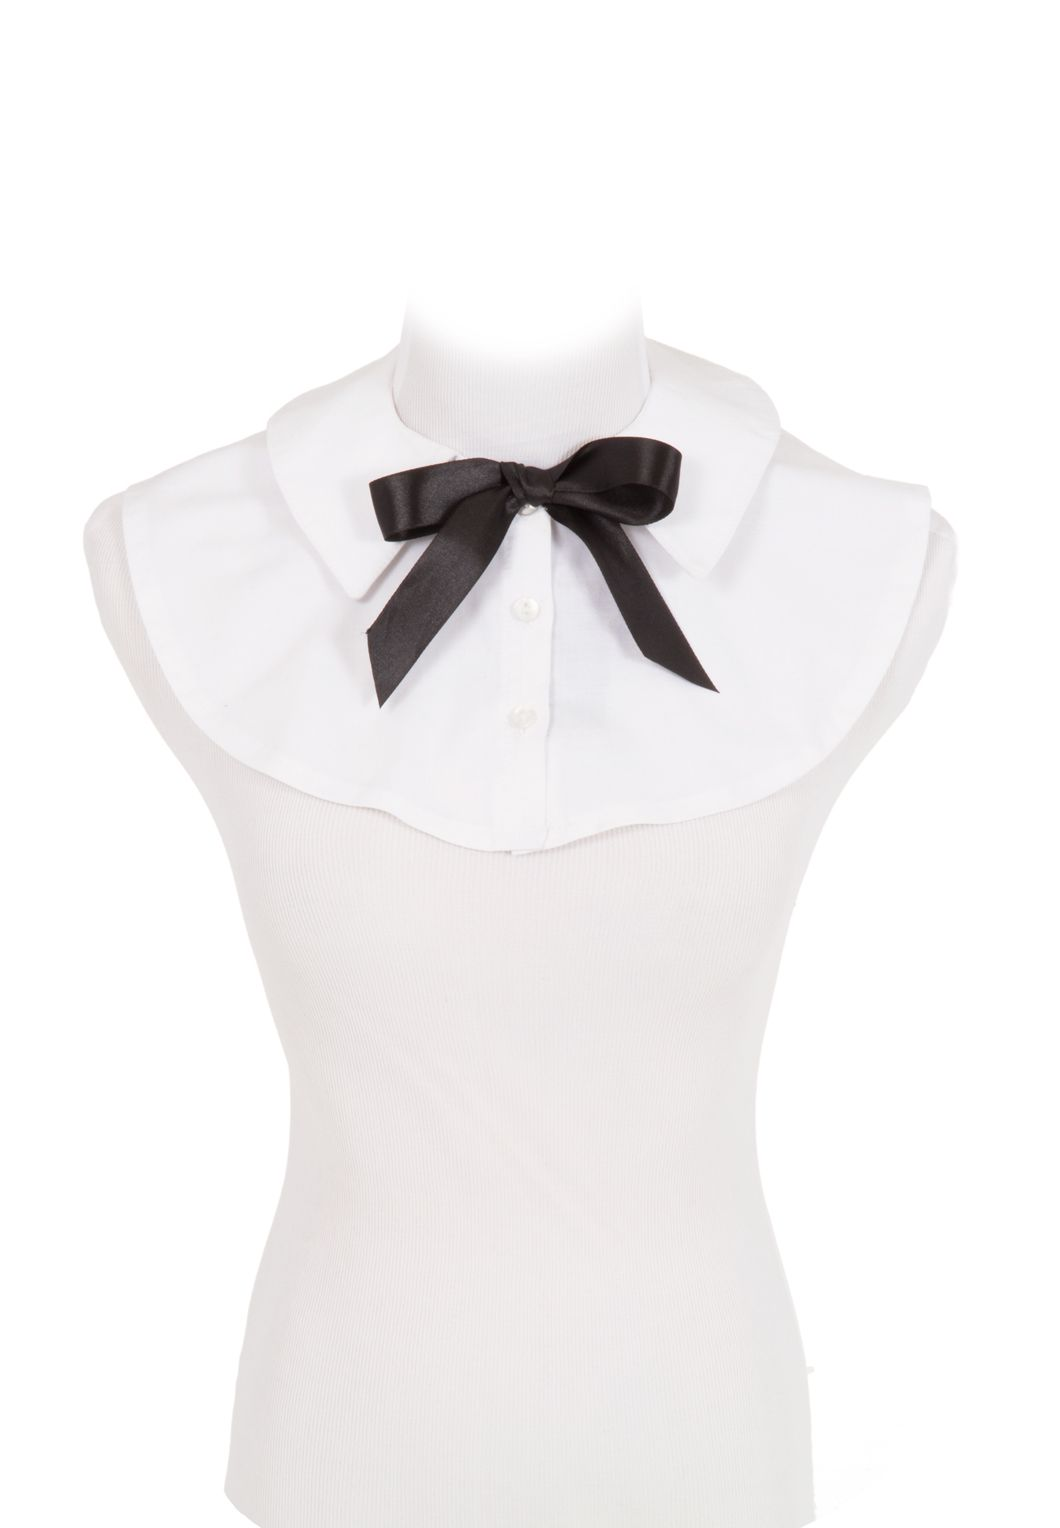 White Cotton Collar and  Tie By Recollections